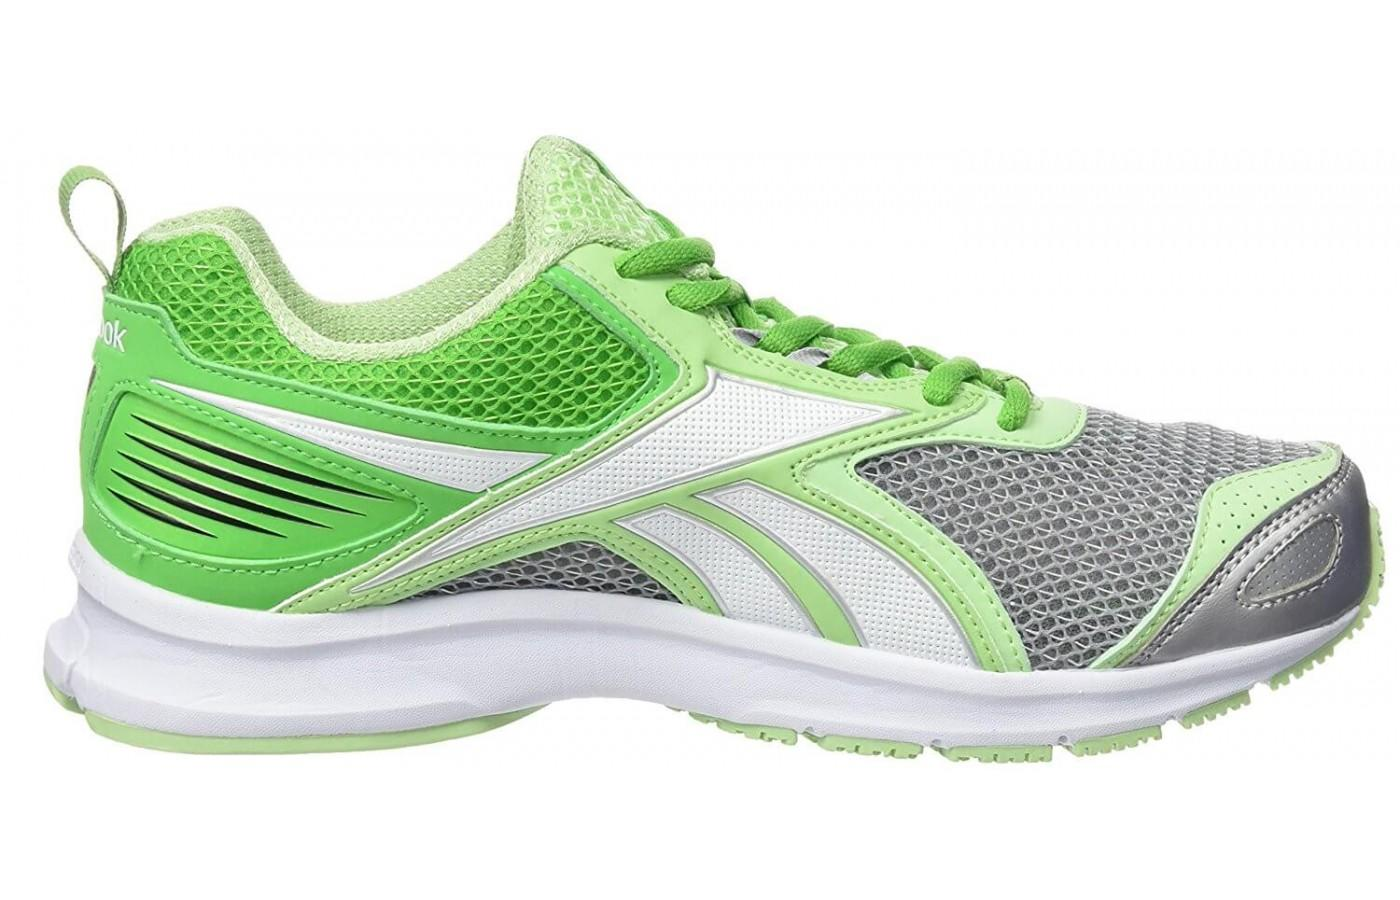 The outsole of the Reebok TripleHall 5.0 works well on roads and treadmills